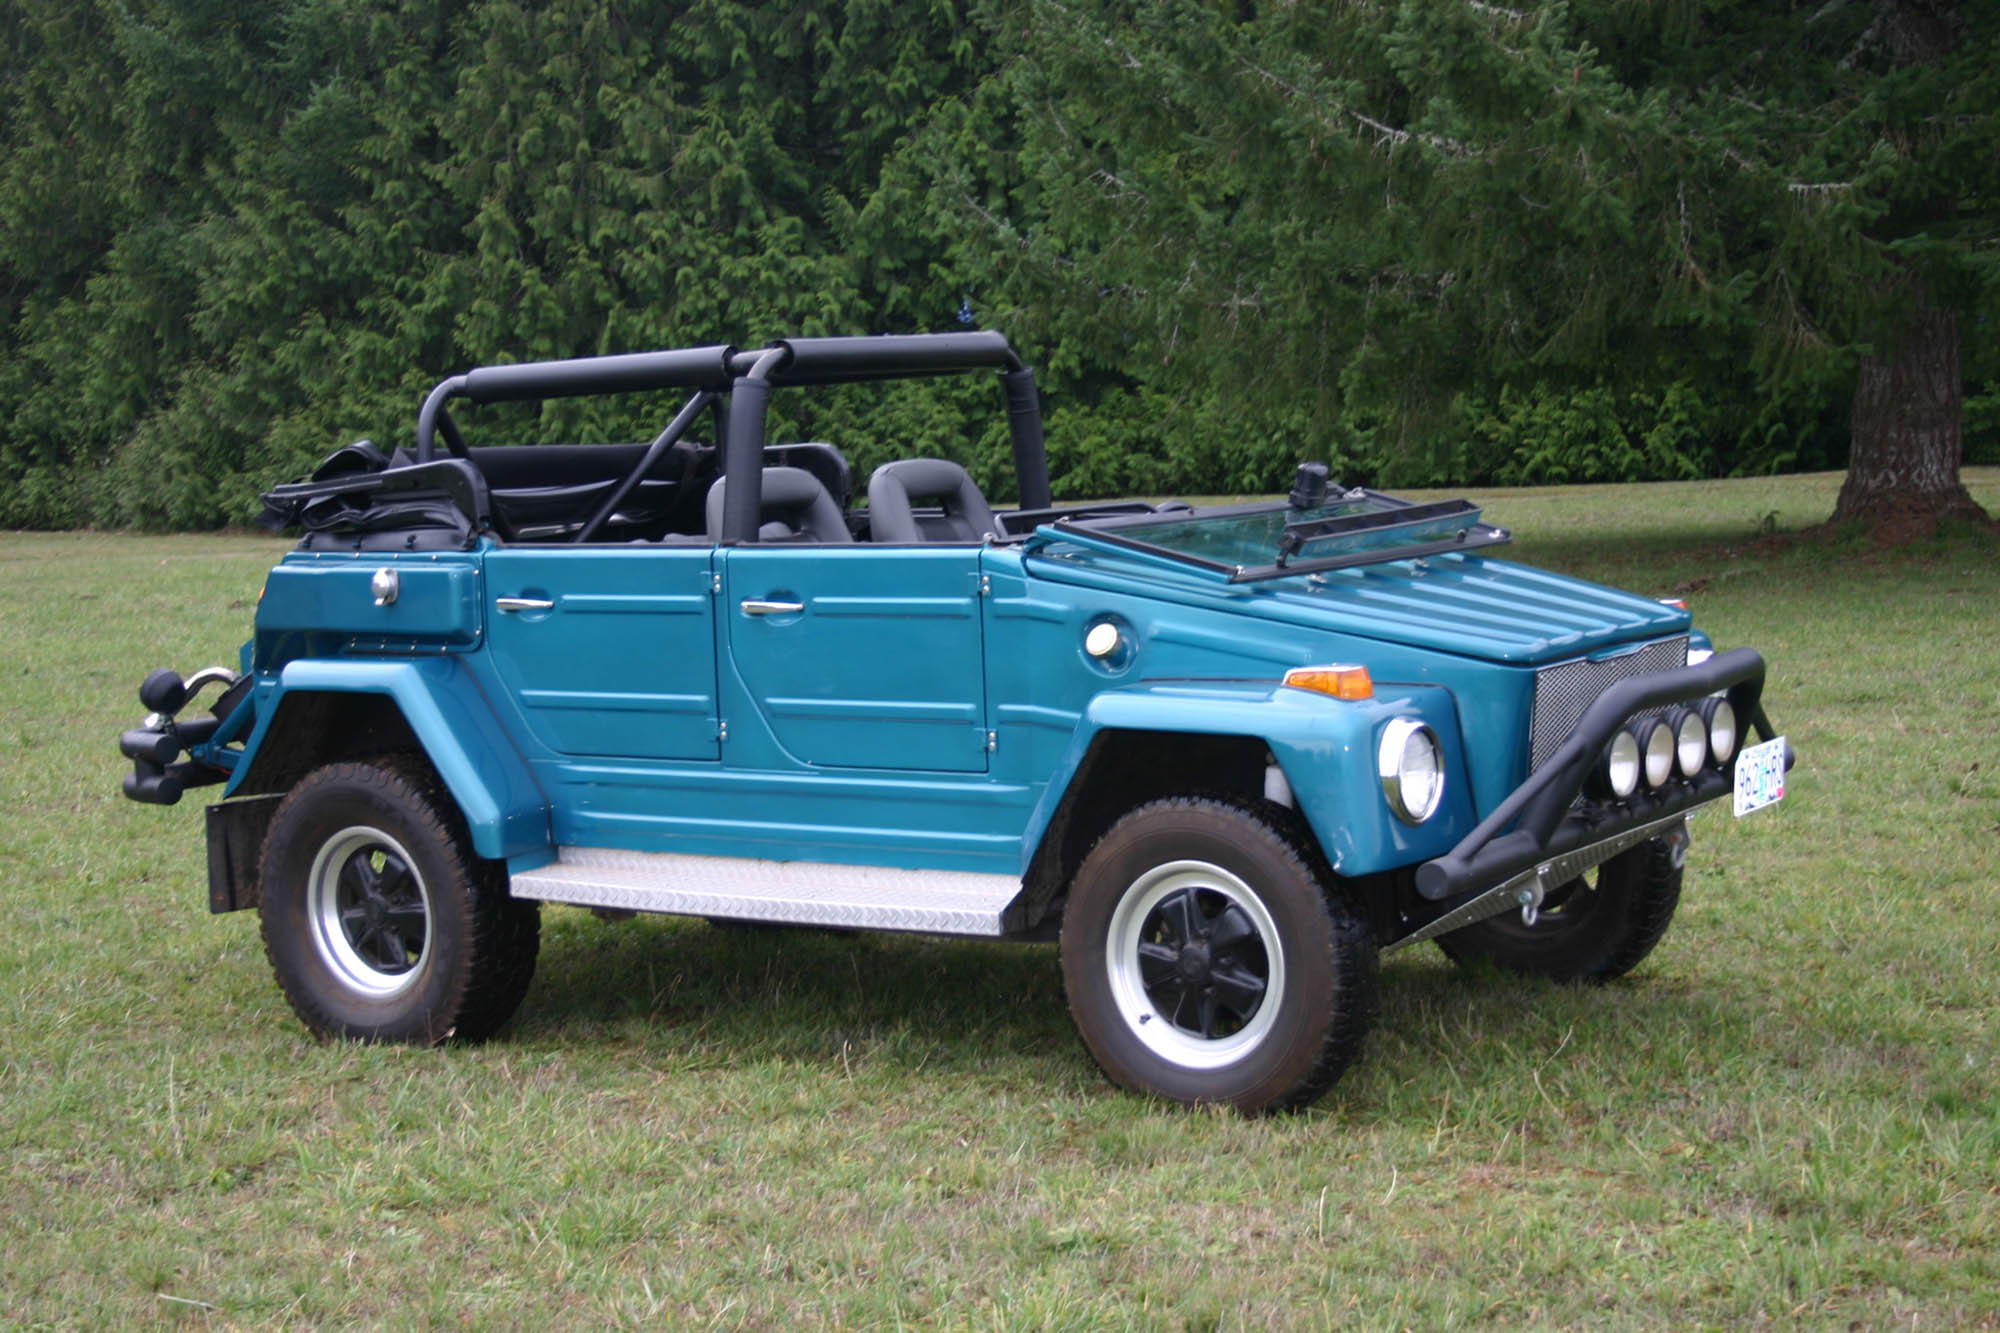 For Sale: 1974 VW Thing with a Buick V8 – Engine Swap Depot on buick skylark wiring harness, 1955 thunderbird wiring harness, porsche 356 wiring harness, dodge m37 wiring harness, vw dune buggy wiring harness, lincoln aviator wiring harness, volvo 1800 wiring harness, amc amx wiring harness, saab 900 wiring harness, porsche 911 wiring harness, ford f 150 wiring harness, 1968 vw beetle wiring harness, porsche 914 wiring harness, kia spectra wiring harness, chevy nova wiring harness, pontiac fiero wiring harness, ford pinto wiring harness,